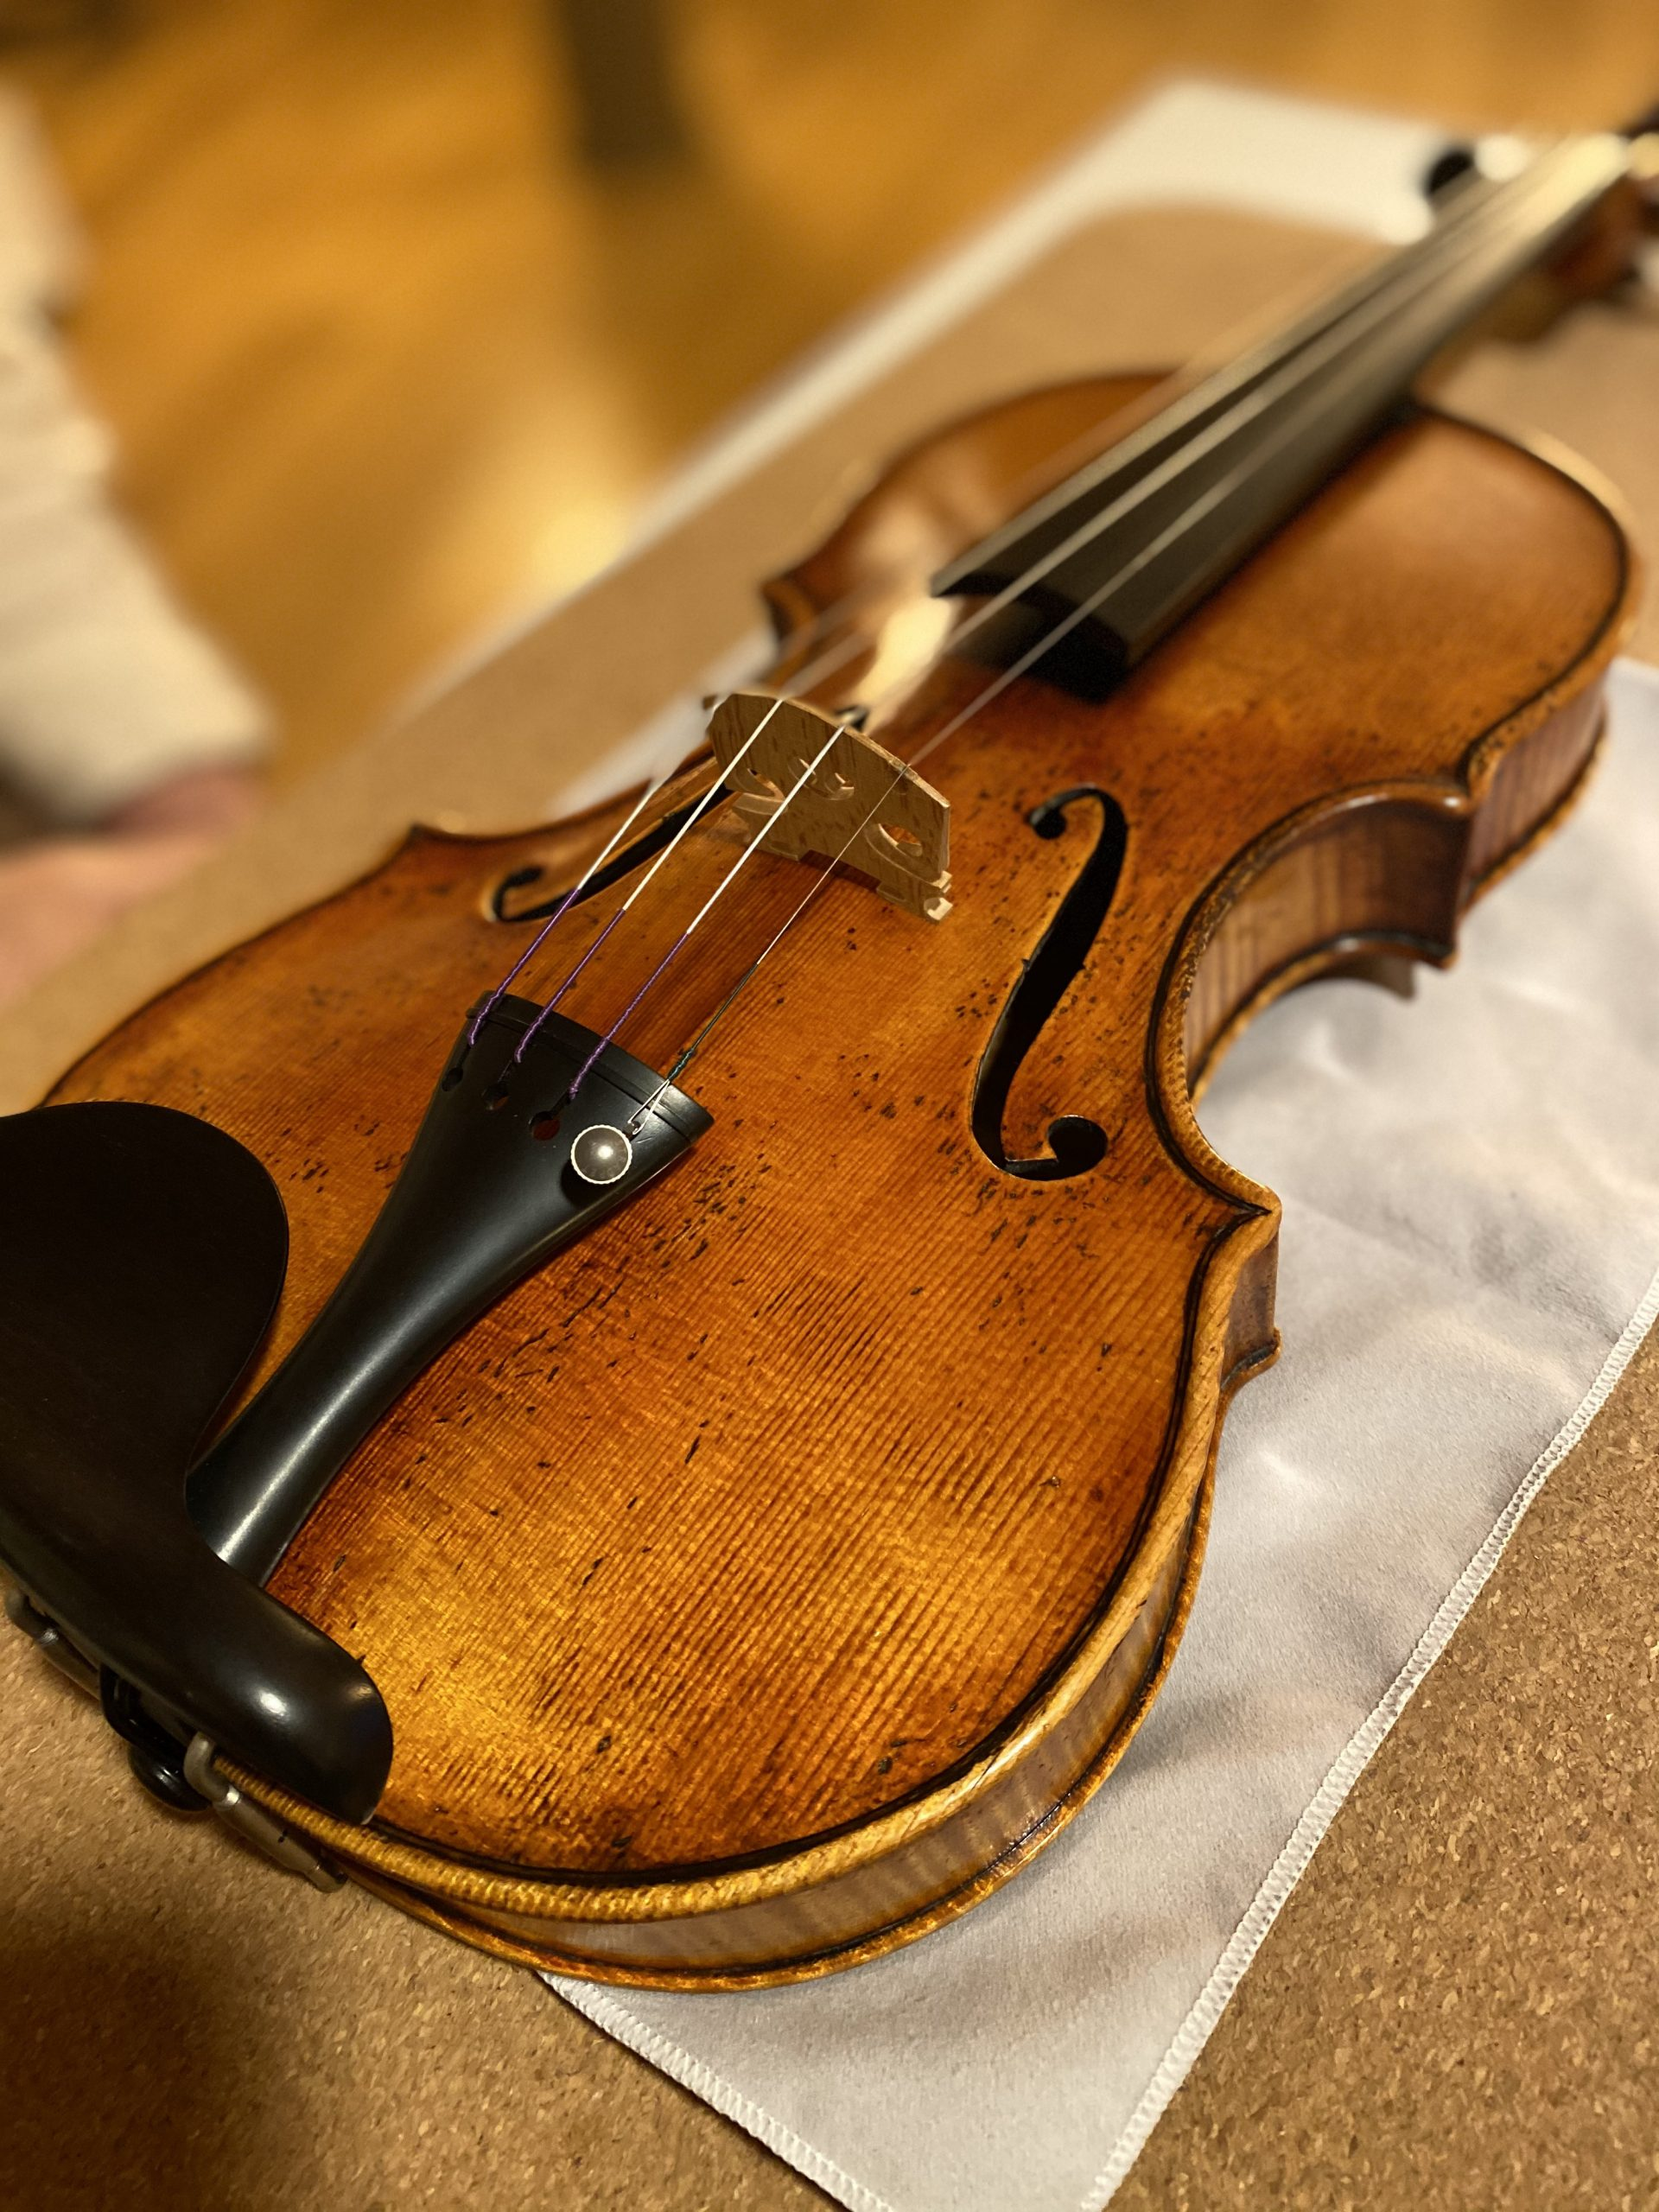 When is the right time to upgrade violin?